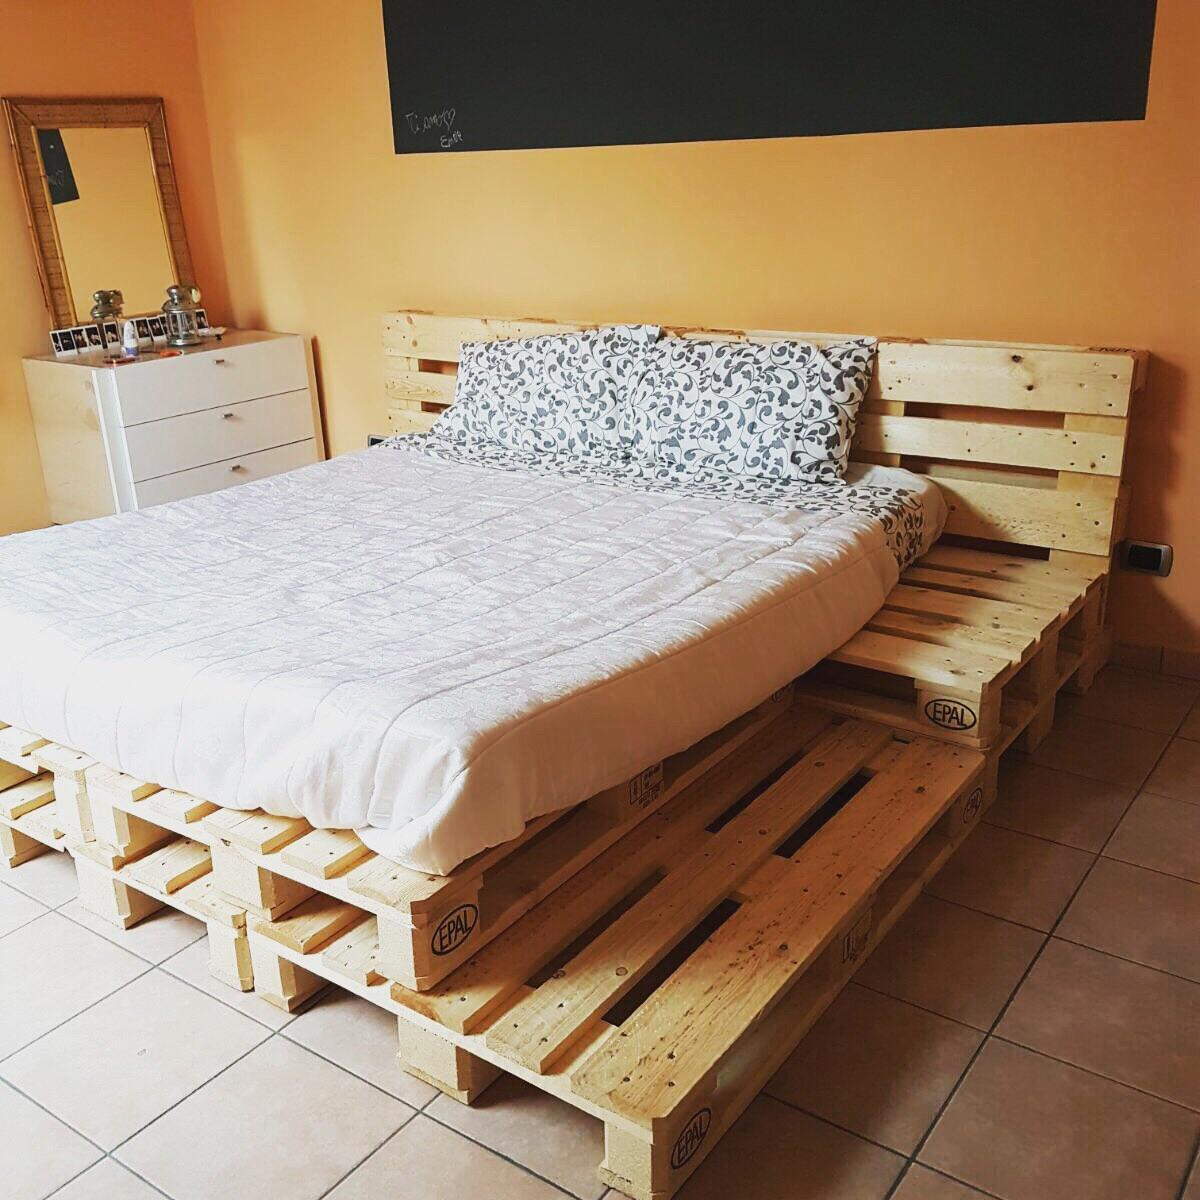 Letto Matrimoniale Pallet.Base Letto Matrimoniale Pallet In 12037 Saluzzo For 90 00 For